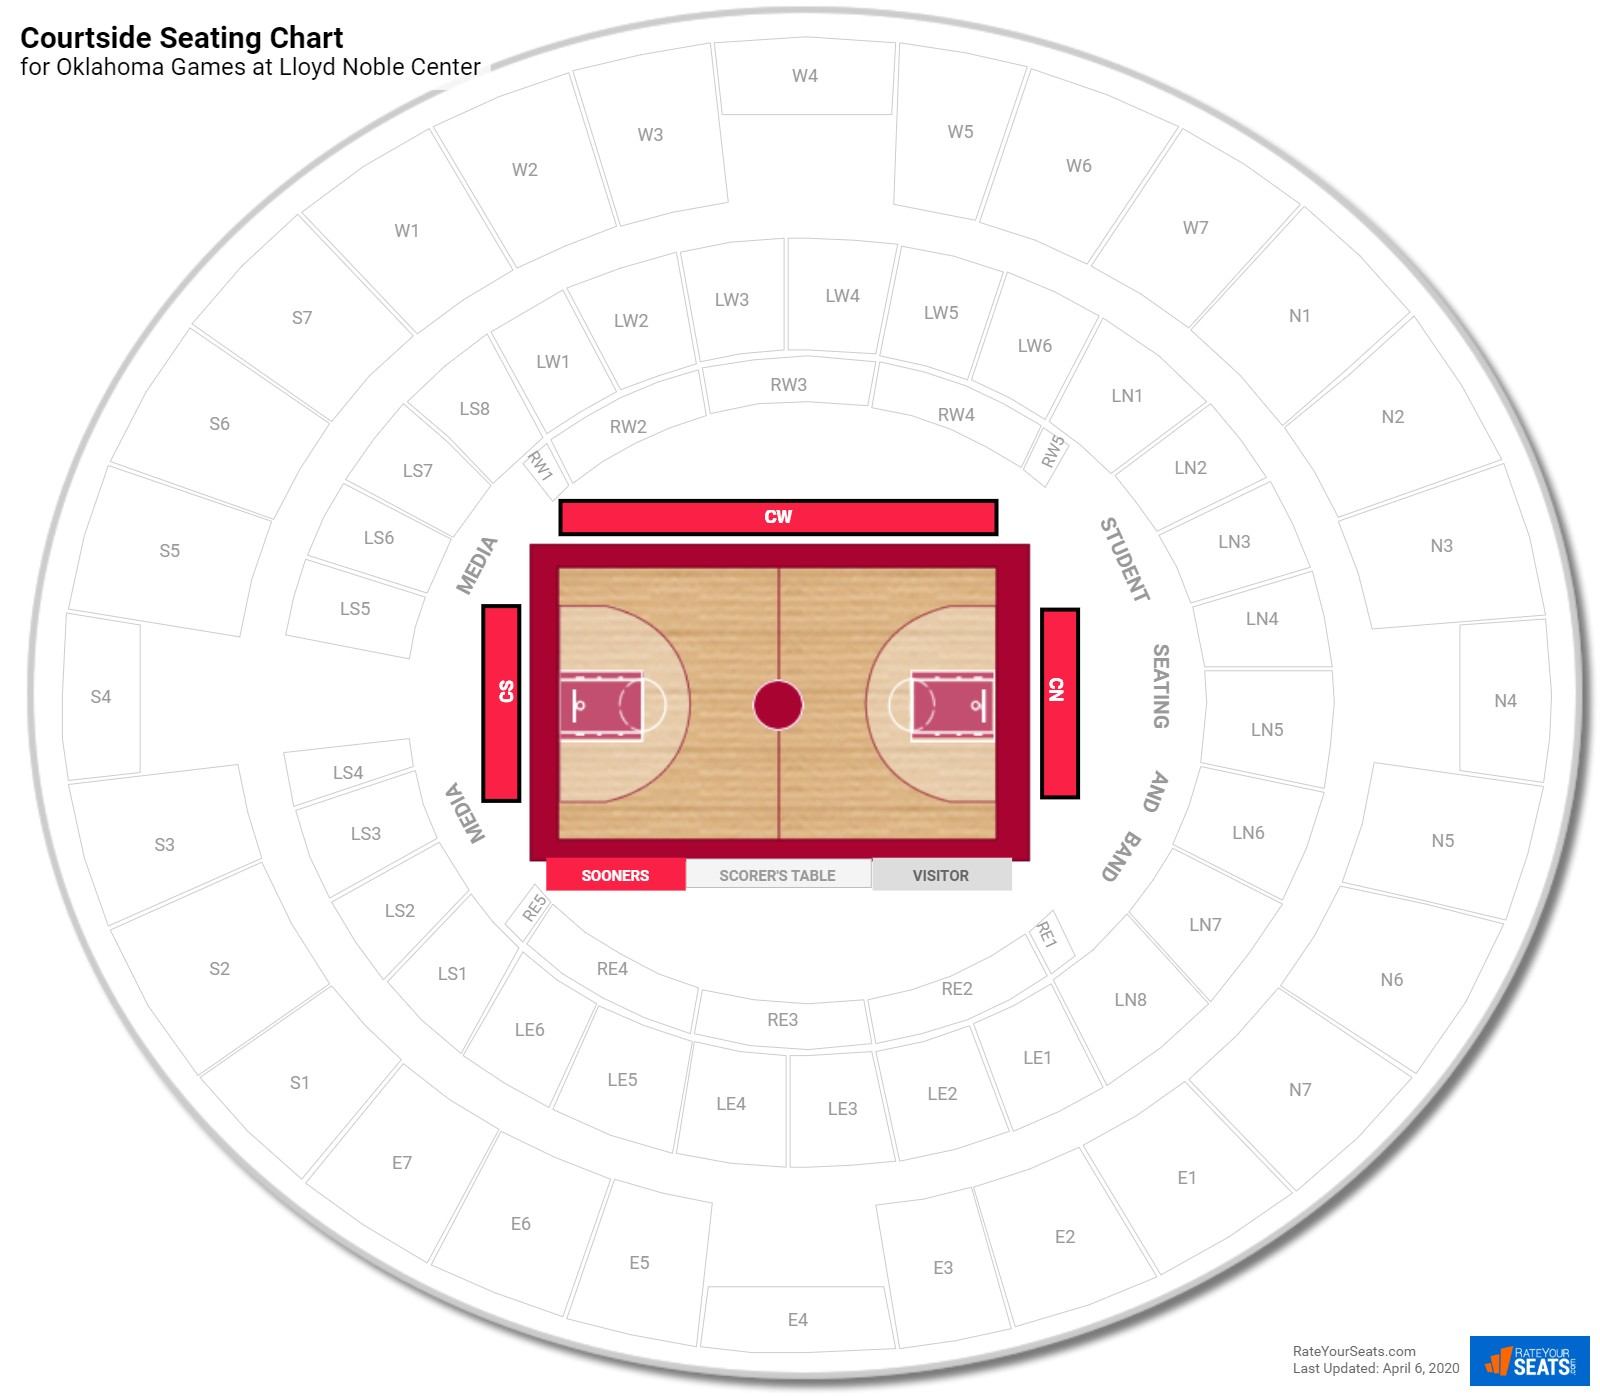 Lloyd Noble Center Courtside seating chart